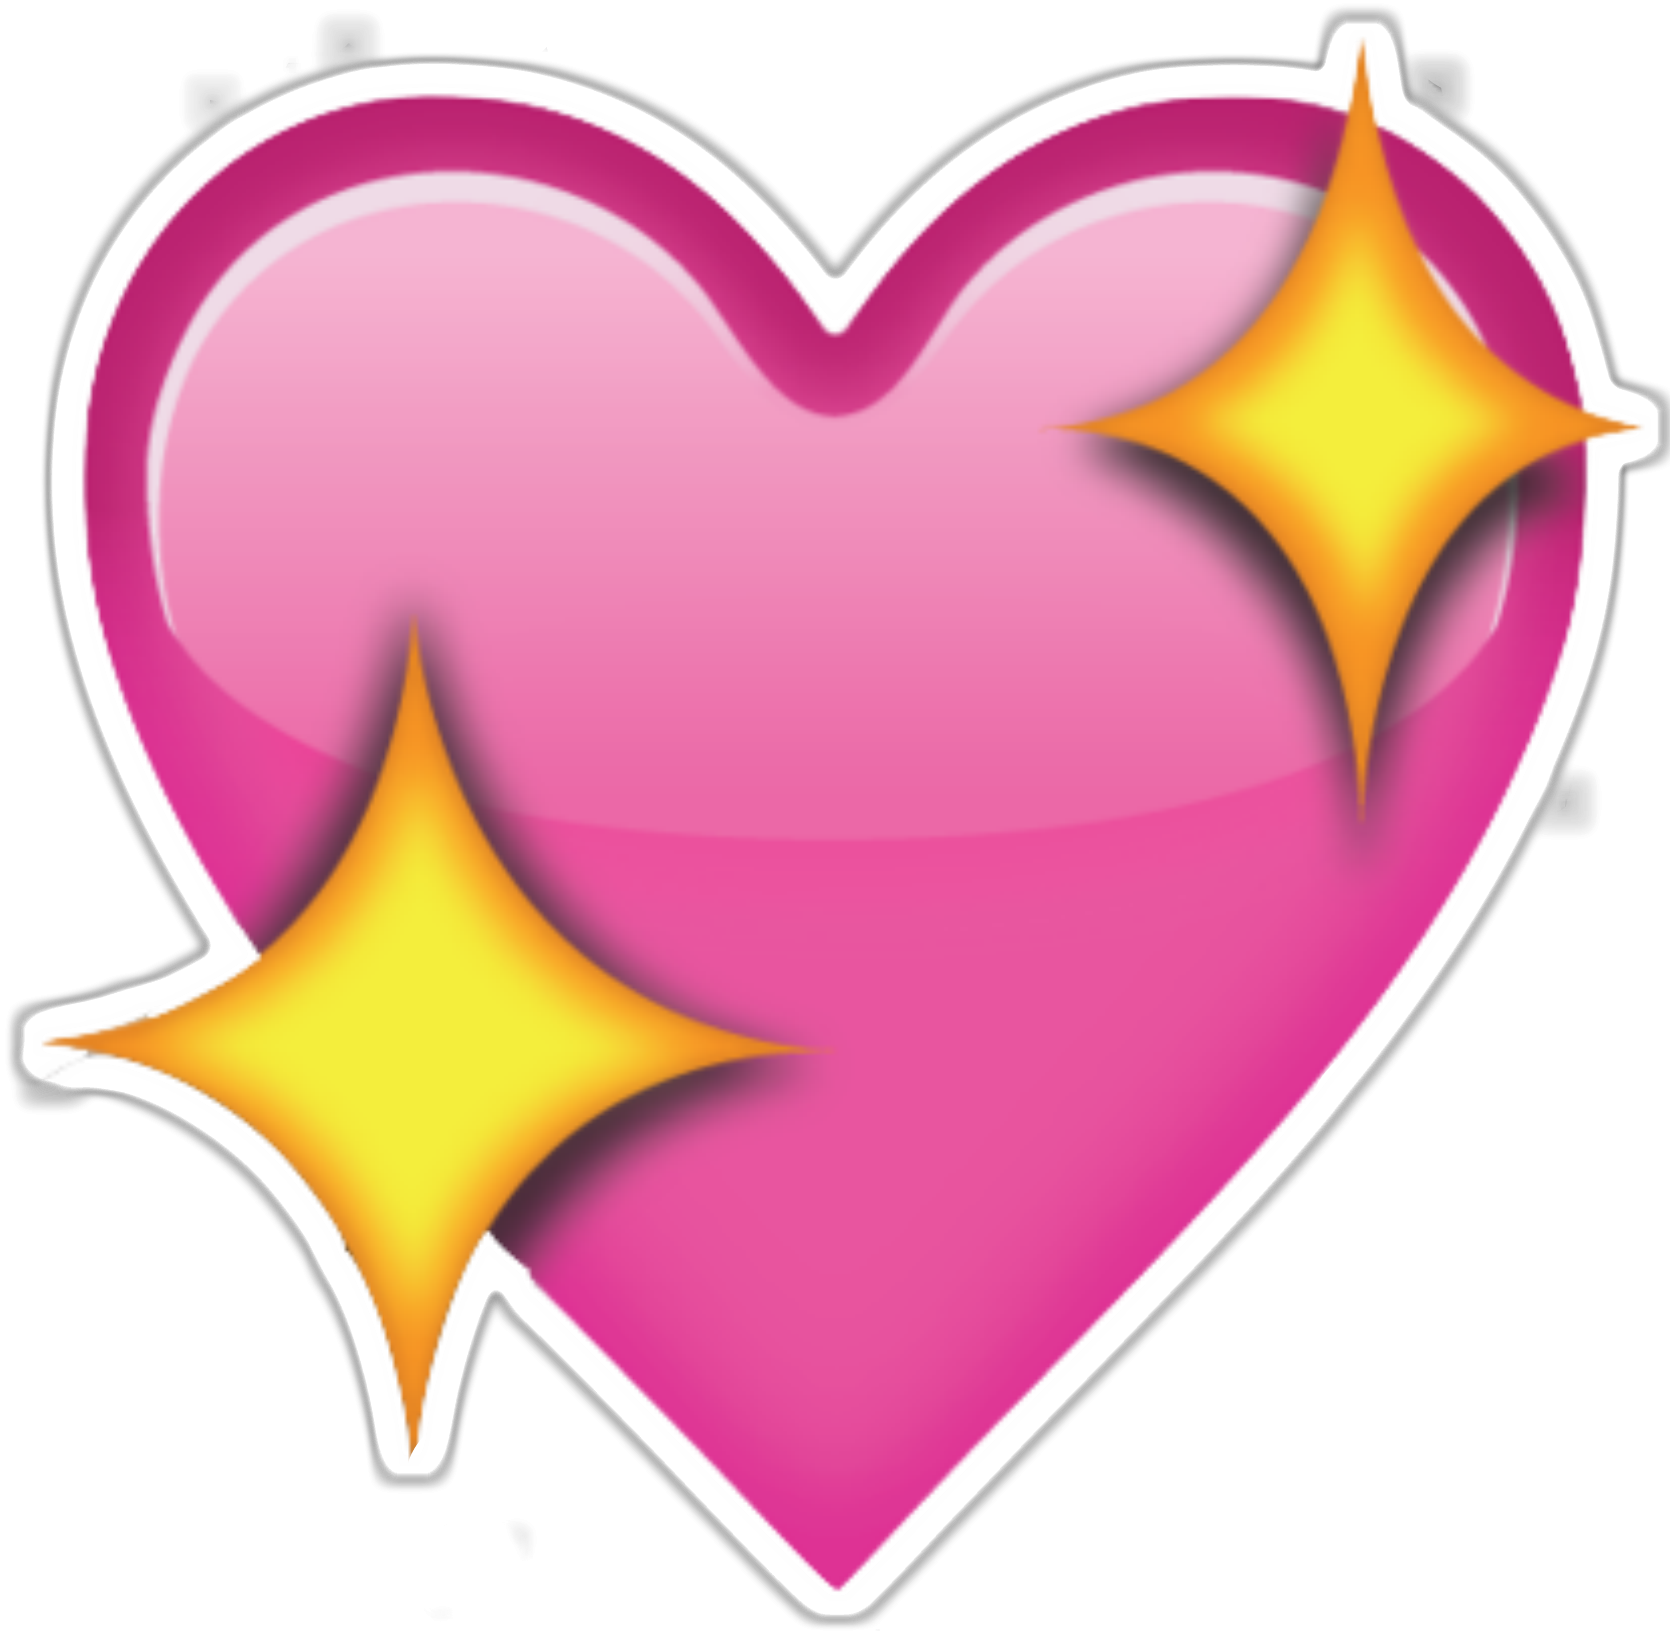 Heart house clipart vector free library Pink Emoji Heart Png vector free library